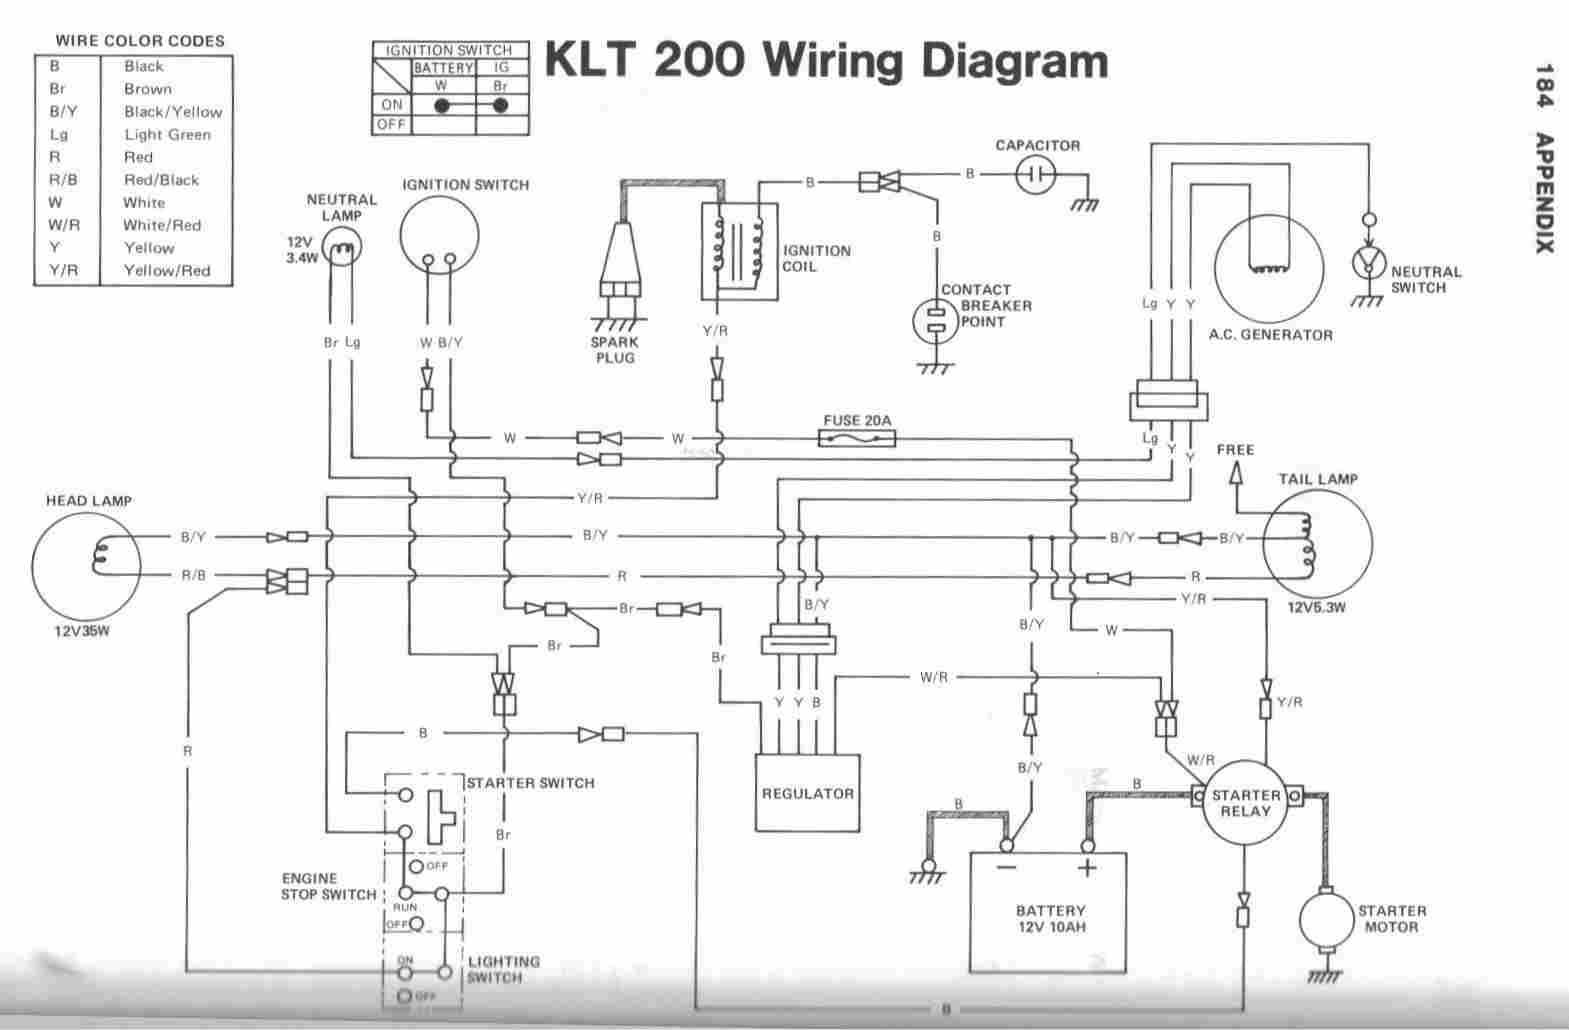 Wiring Diagram For Home Electrical : Residential electrical wiring diagrams pdf easy routing